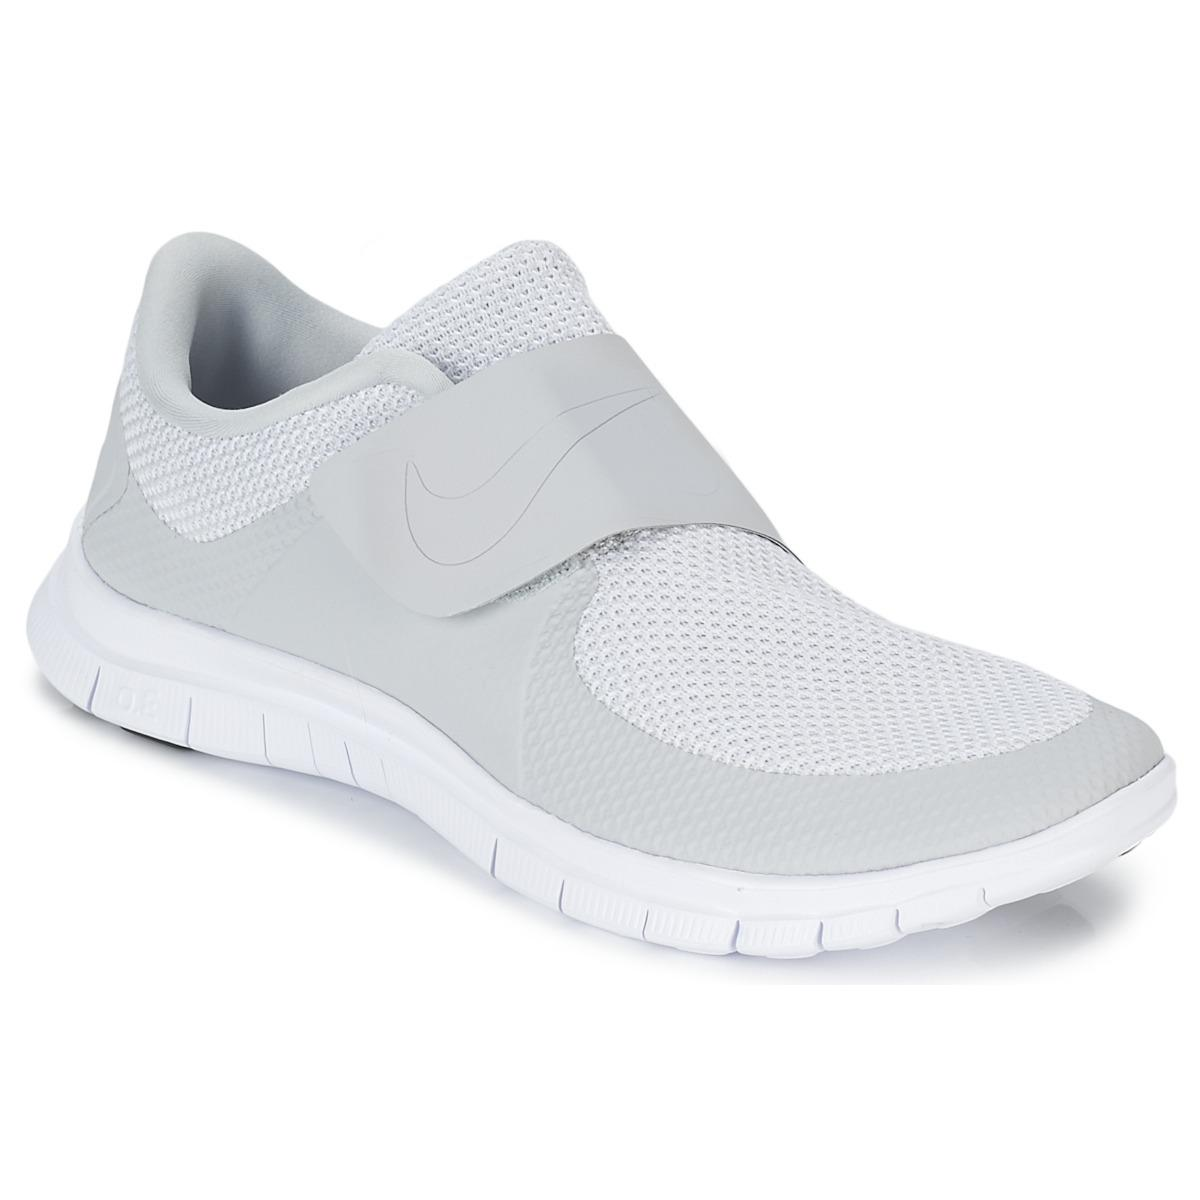 c45c260d147b Gallery. Previously sold at  rubbersole.co.uk · Men s Nike Free ...